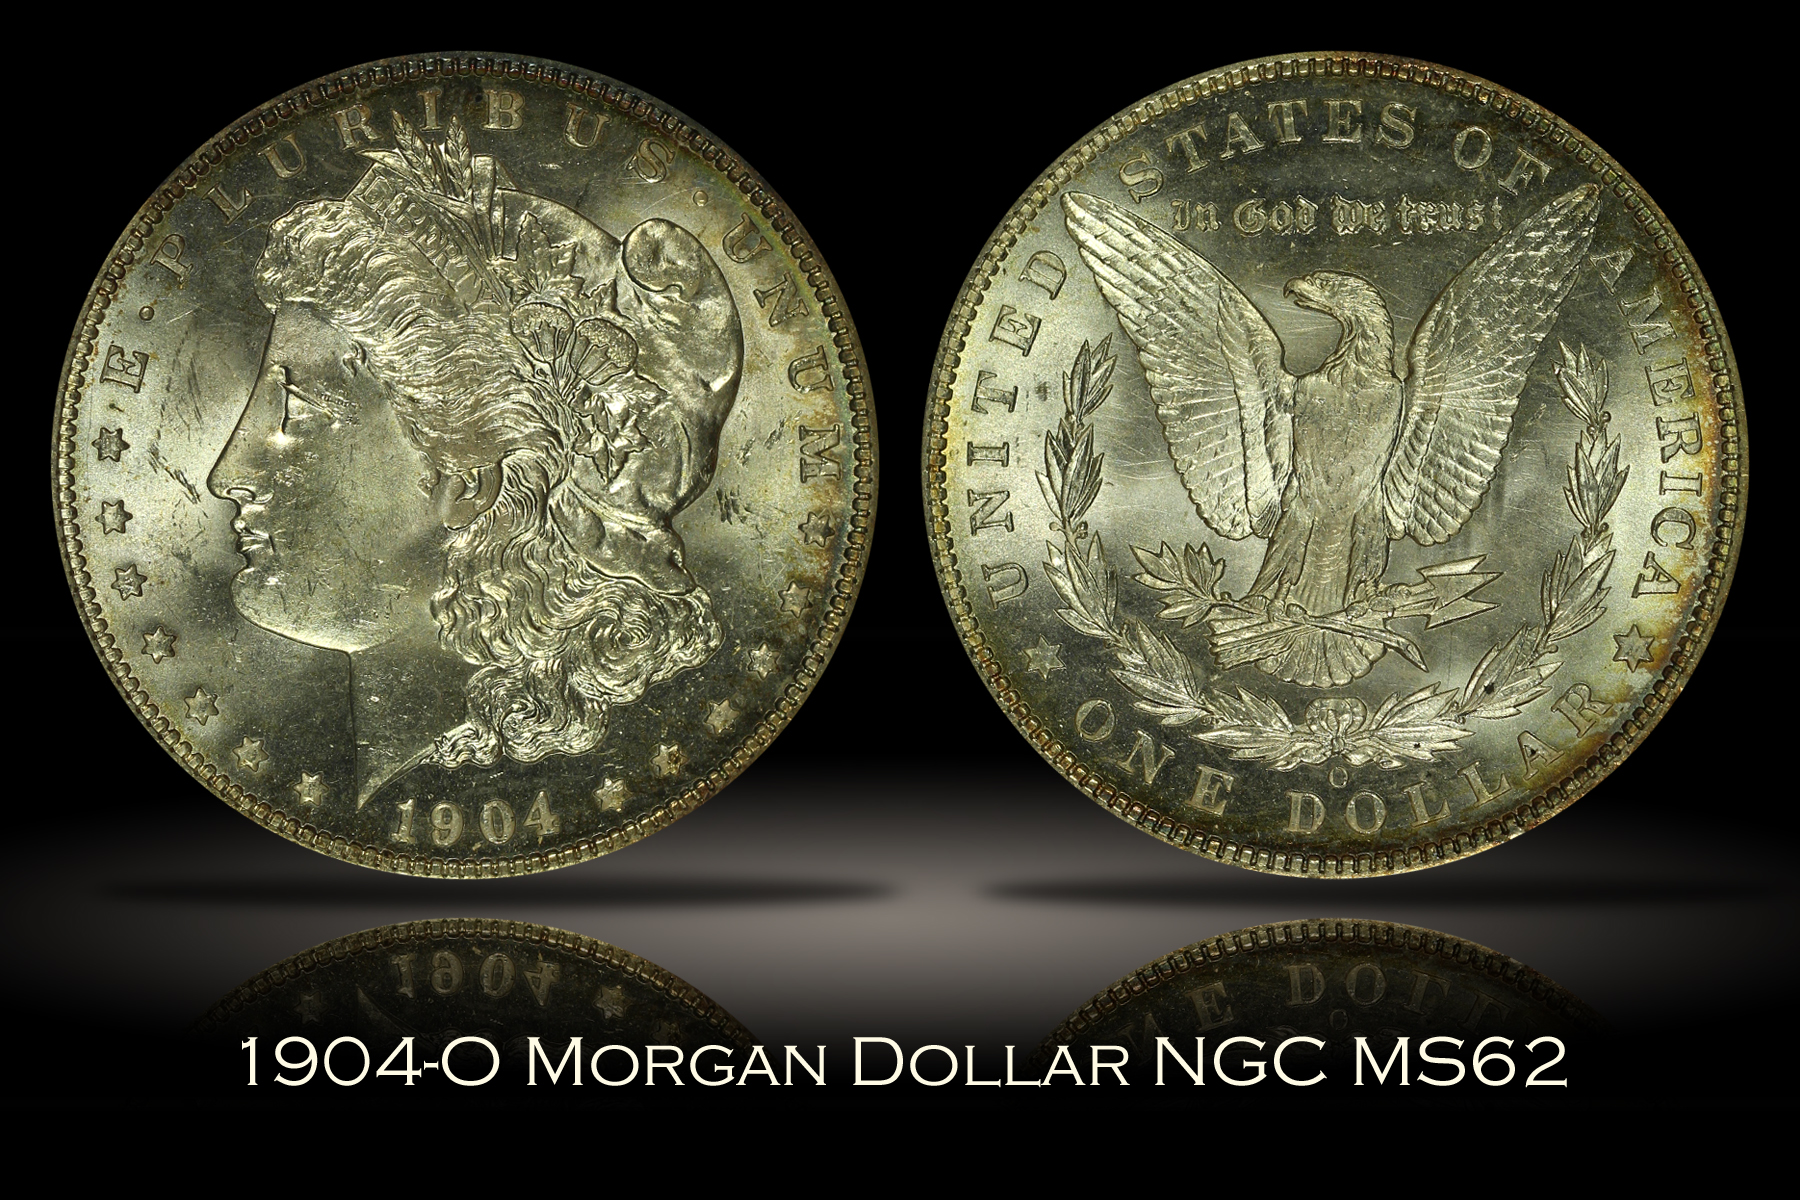 1904-O Morgan Dollar NGC MS62